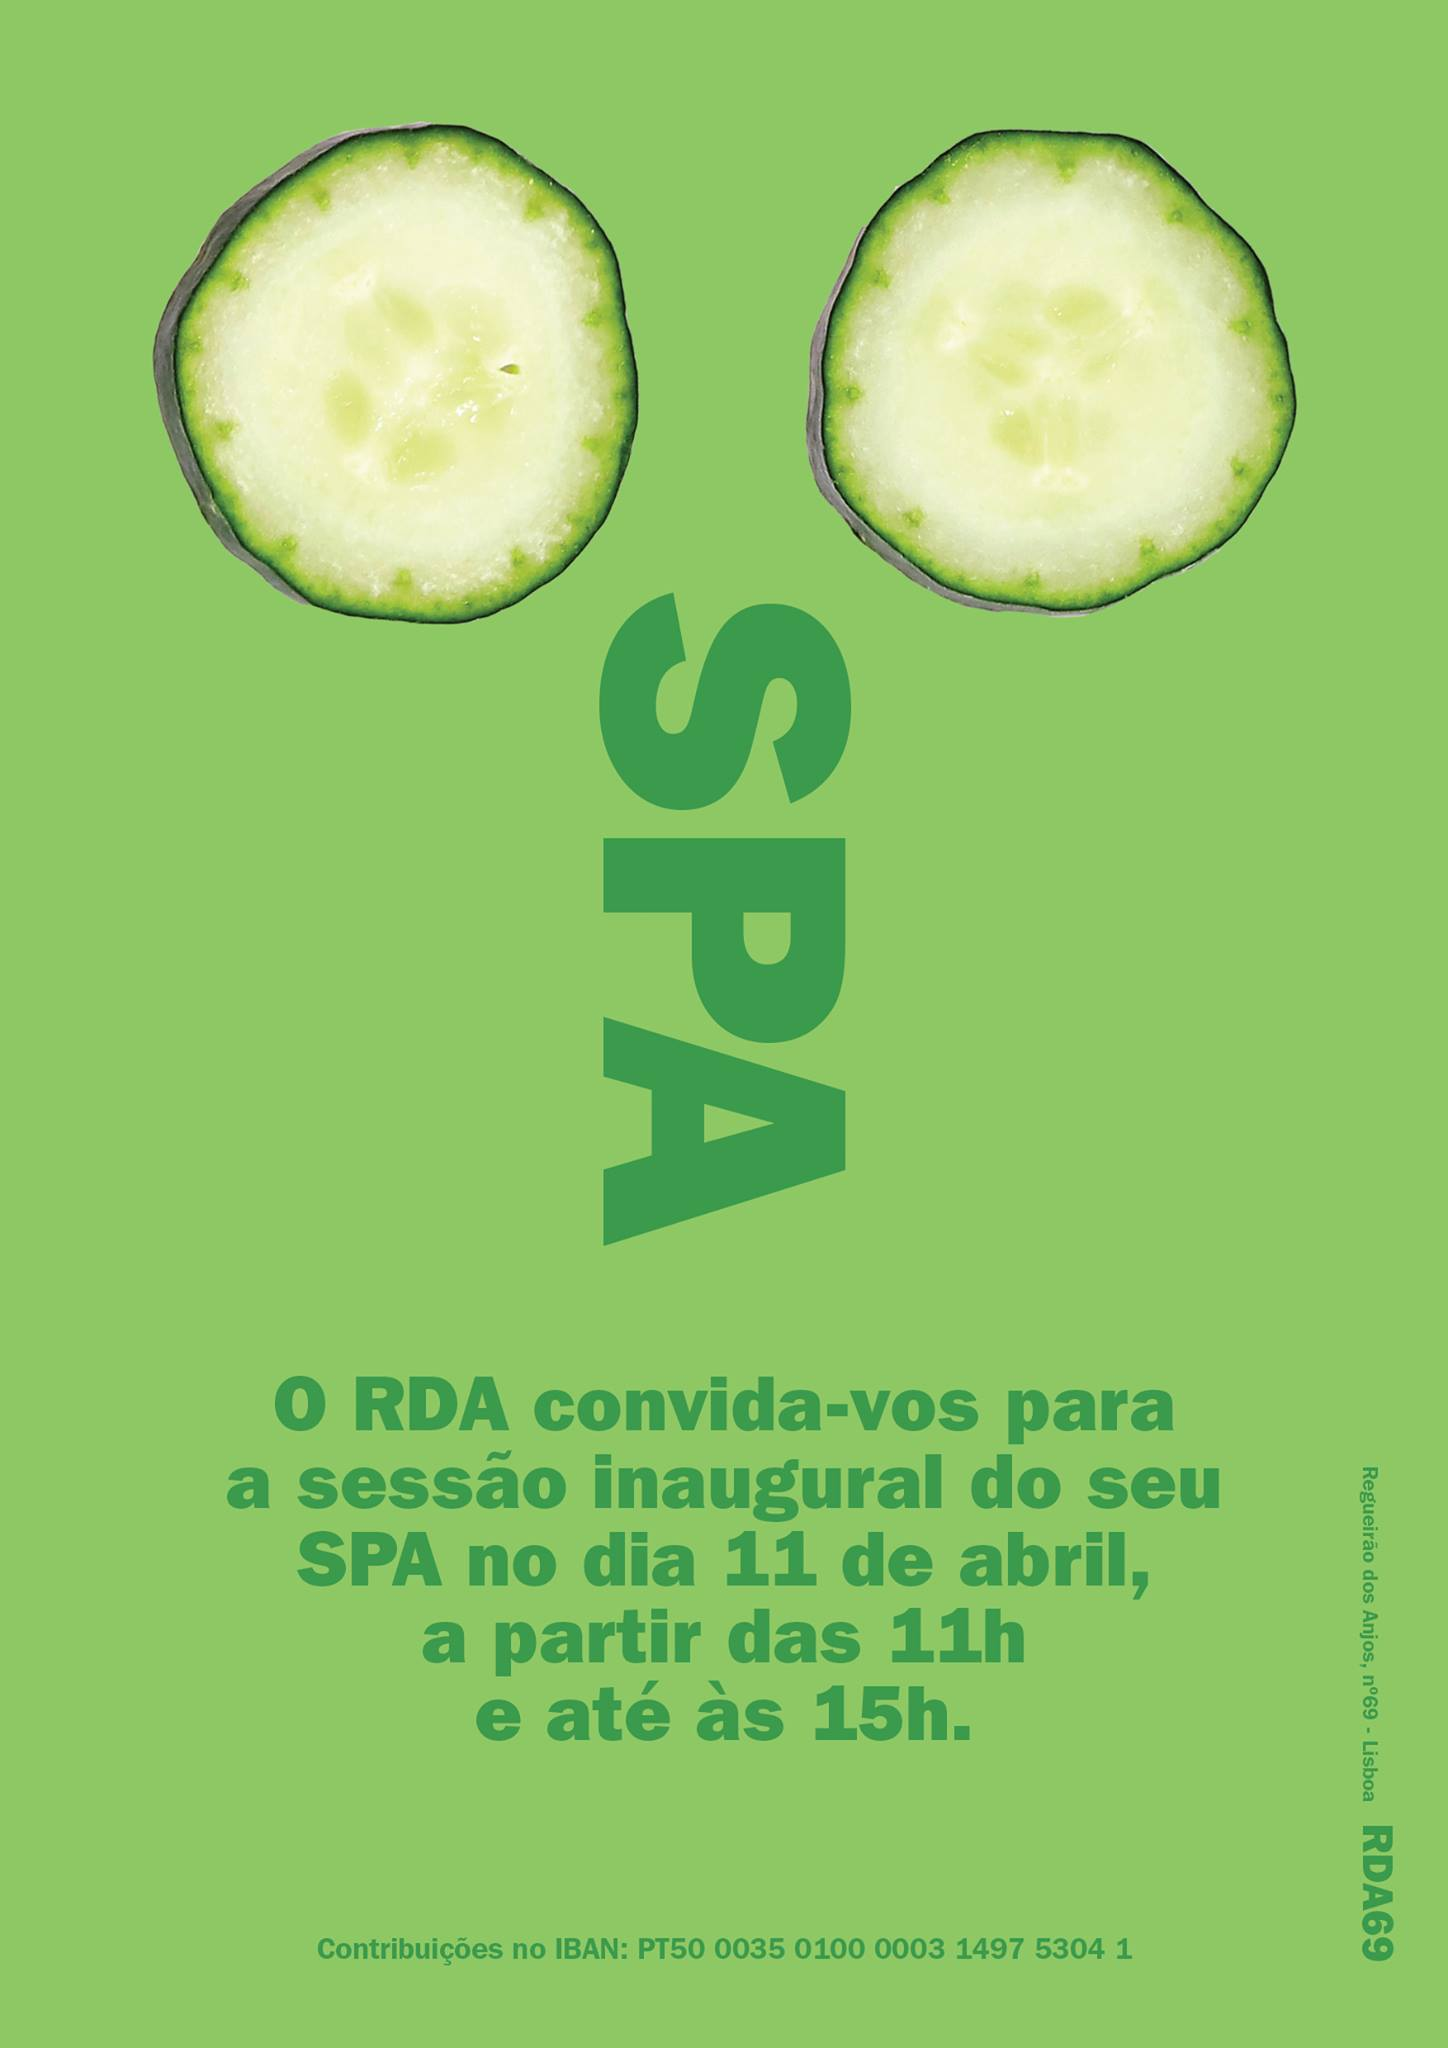 SPA do RDA